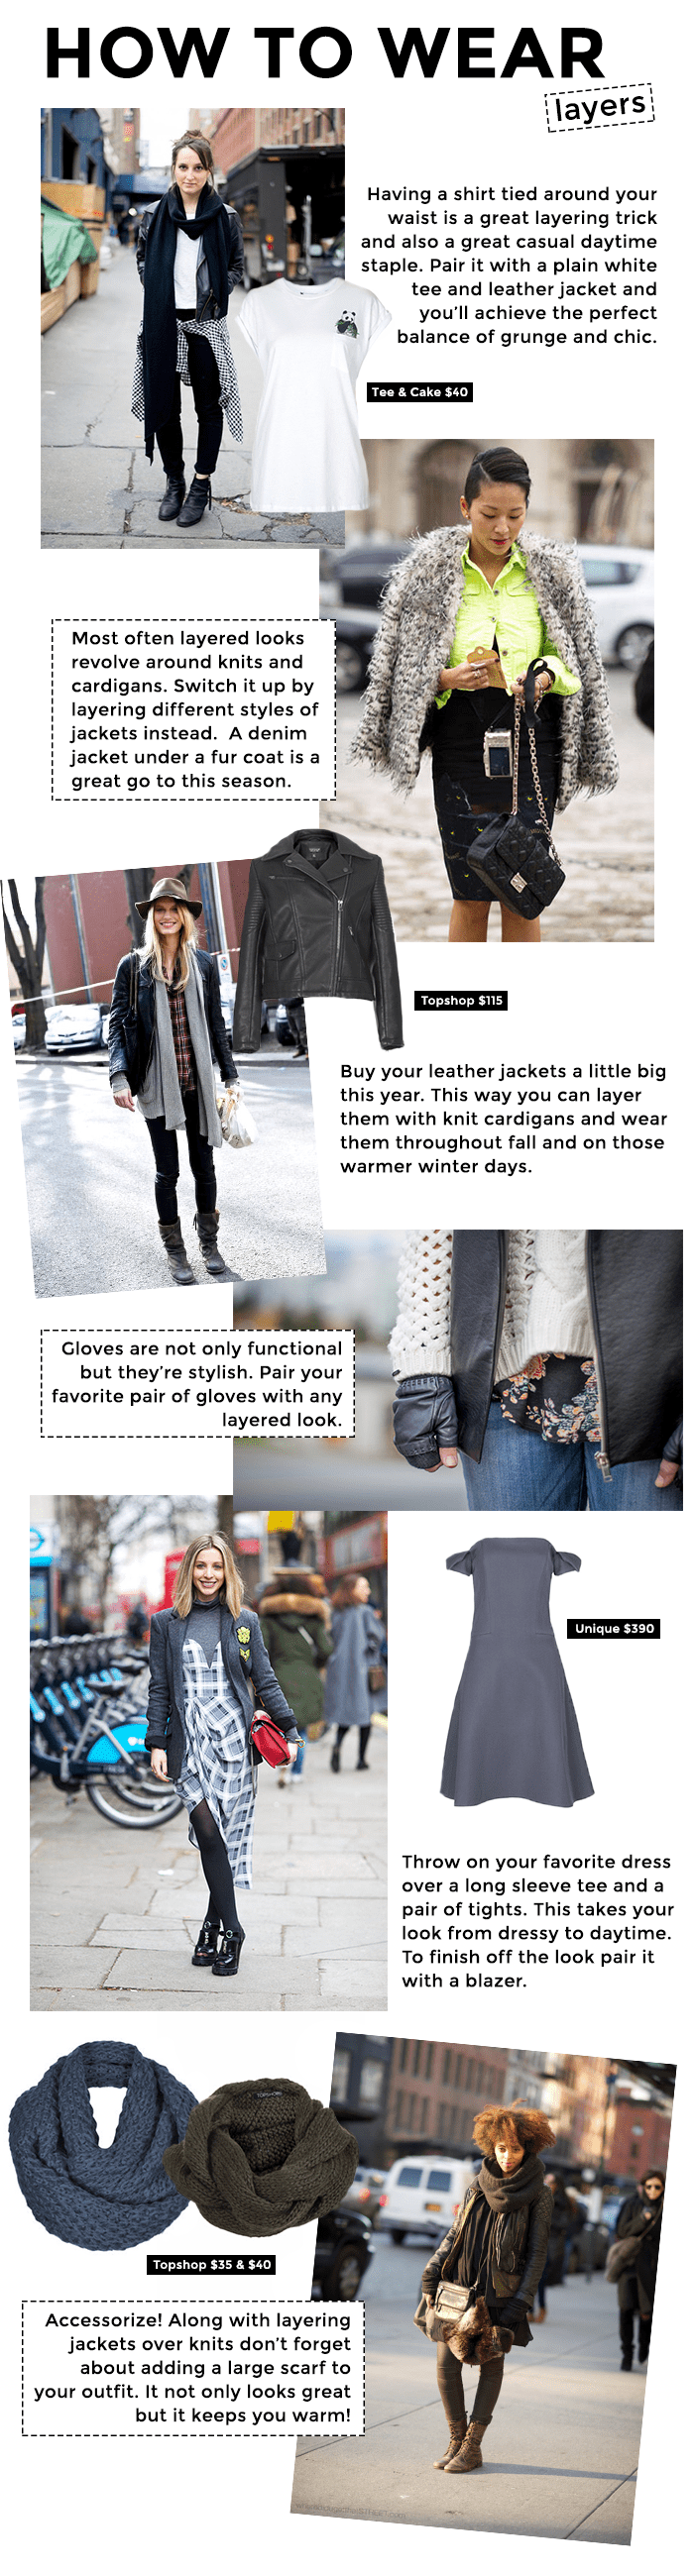 How-to-wear-layers